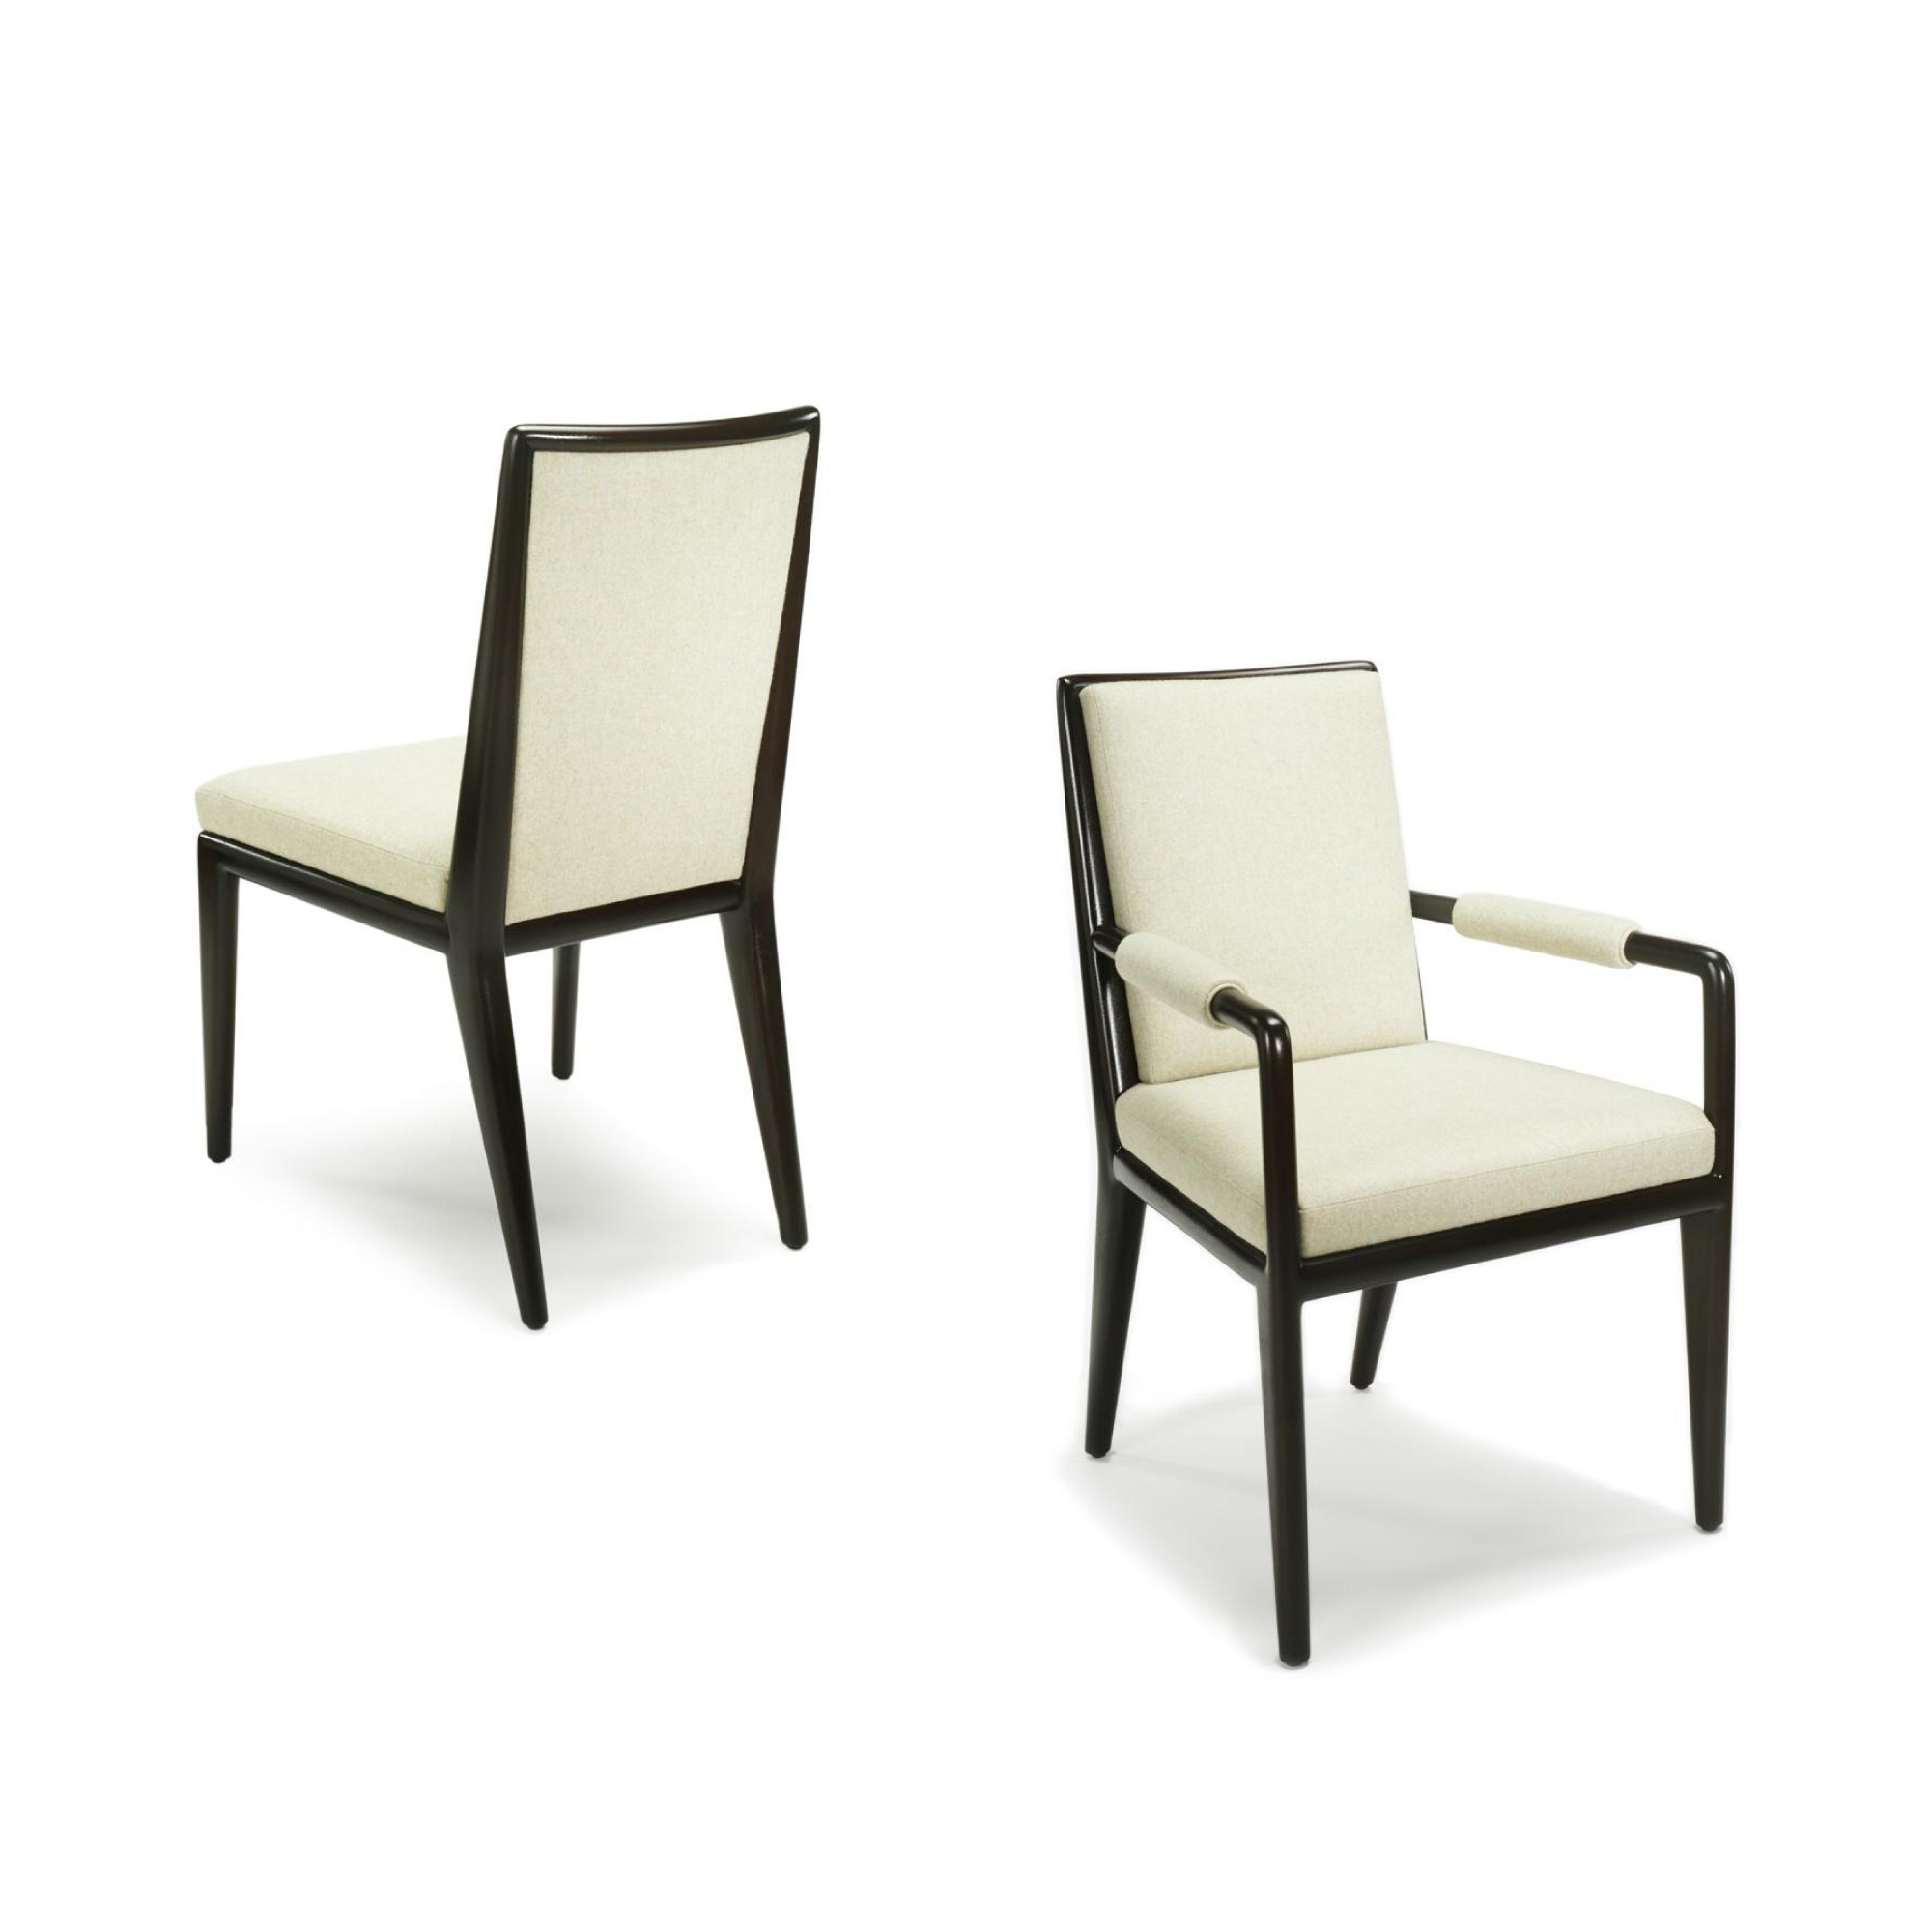 FUTURA DINING CHAIR